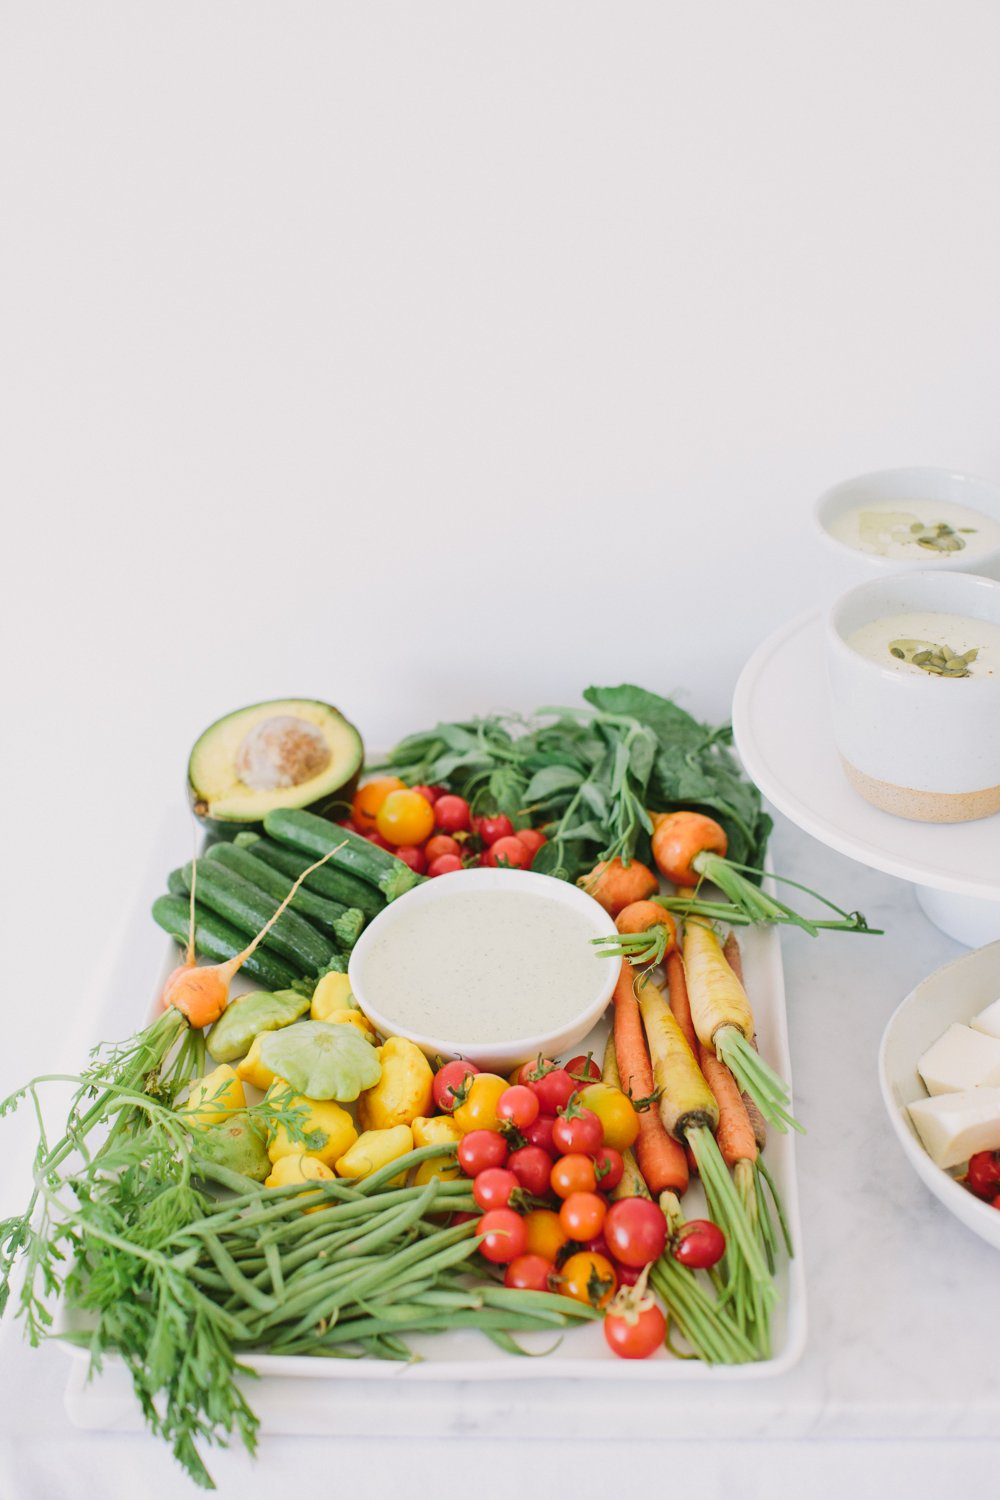 Fresh herbs, avocado, carrots, zucchini and cherry tomatoes arranged around a creamy dip on a large white serving tray